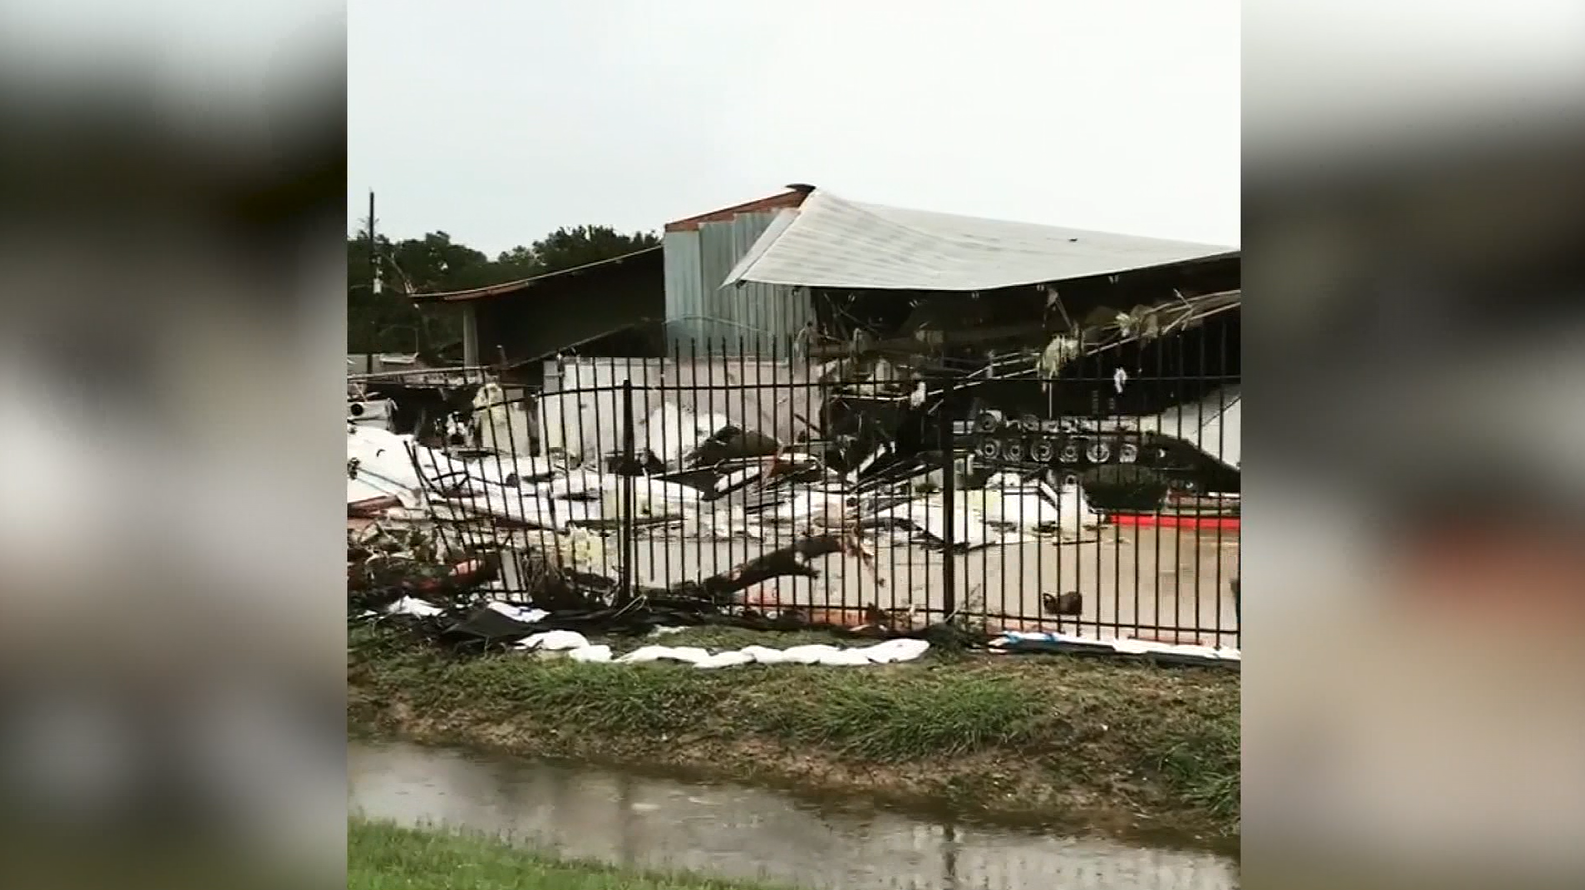 Damage in Katy, Tx (Riane Lindsley - Instagram/CNN)